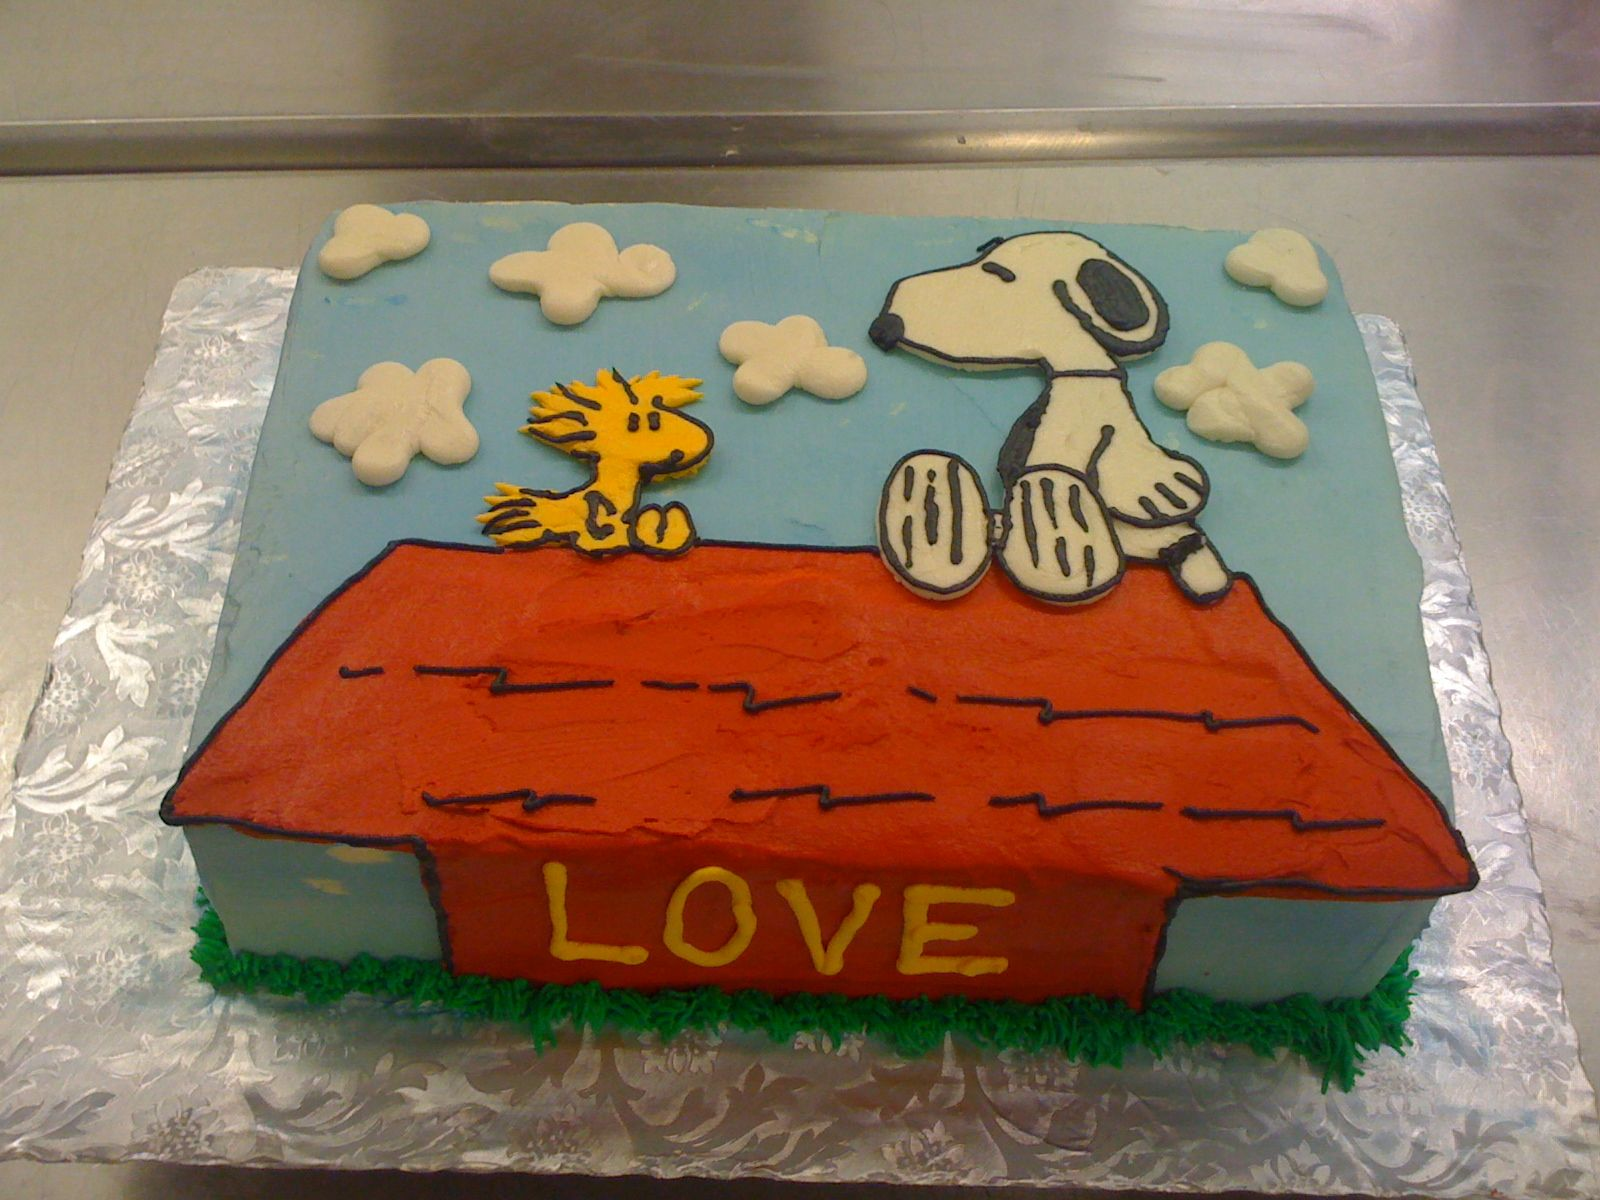 peanuts birthday cake Snoopy and Woodstock Love Birthday Cake